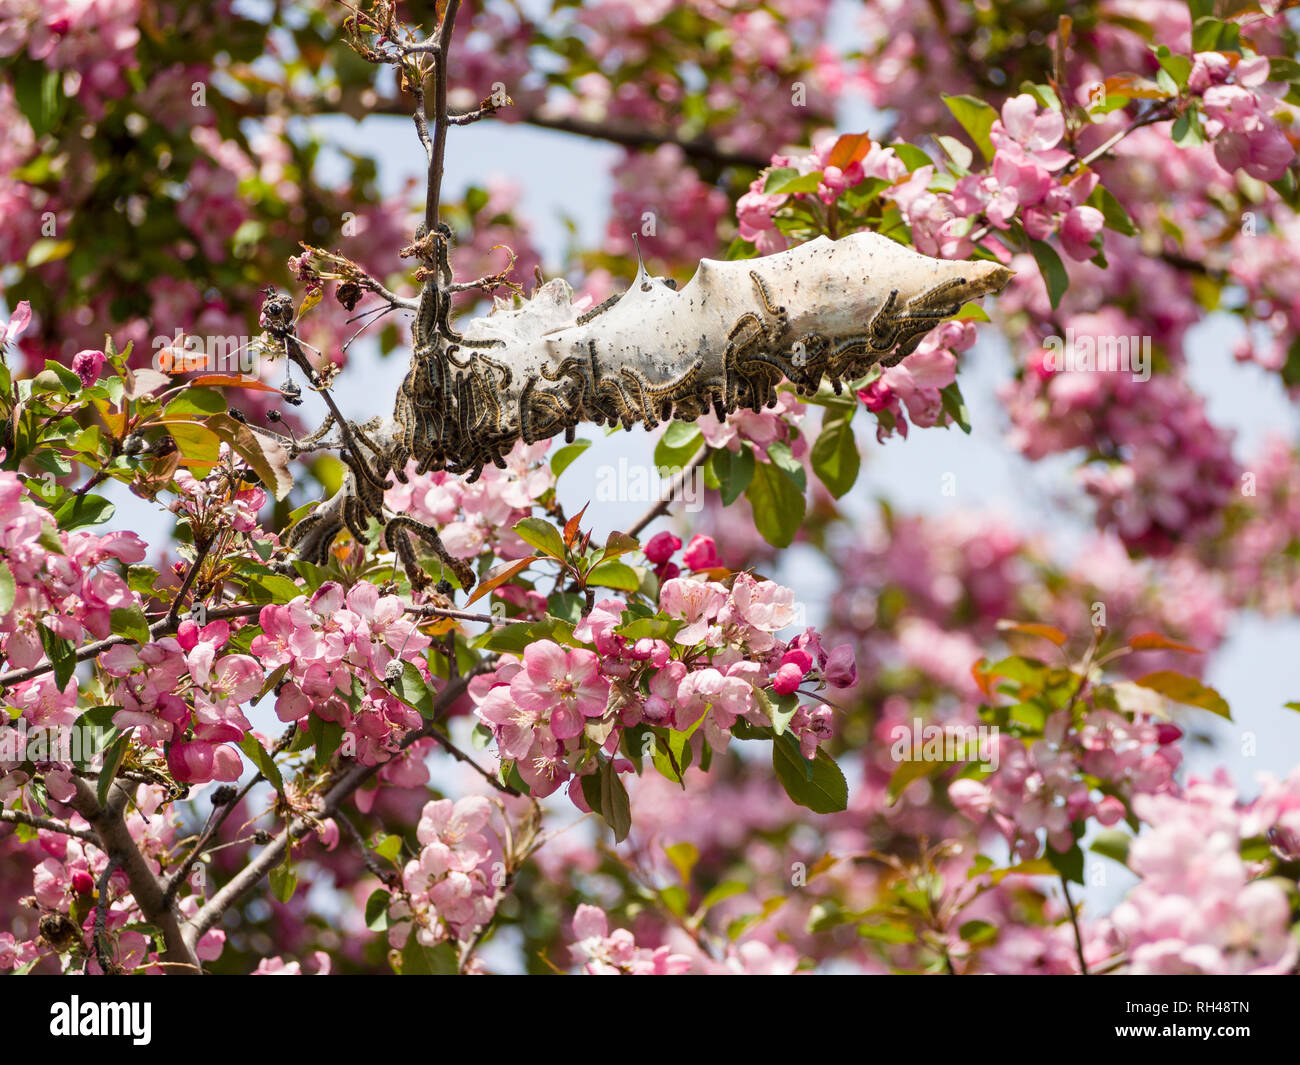 Tent Caterpillars on a Flowering Tree: A seething swarm of tent caterpillars covers the branch of a flowering crab tree covered in fragrant pink spring blossoms. - Stock Image